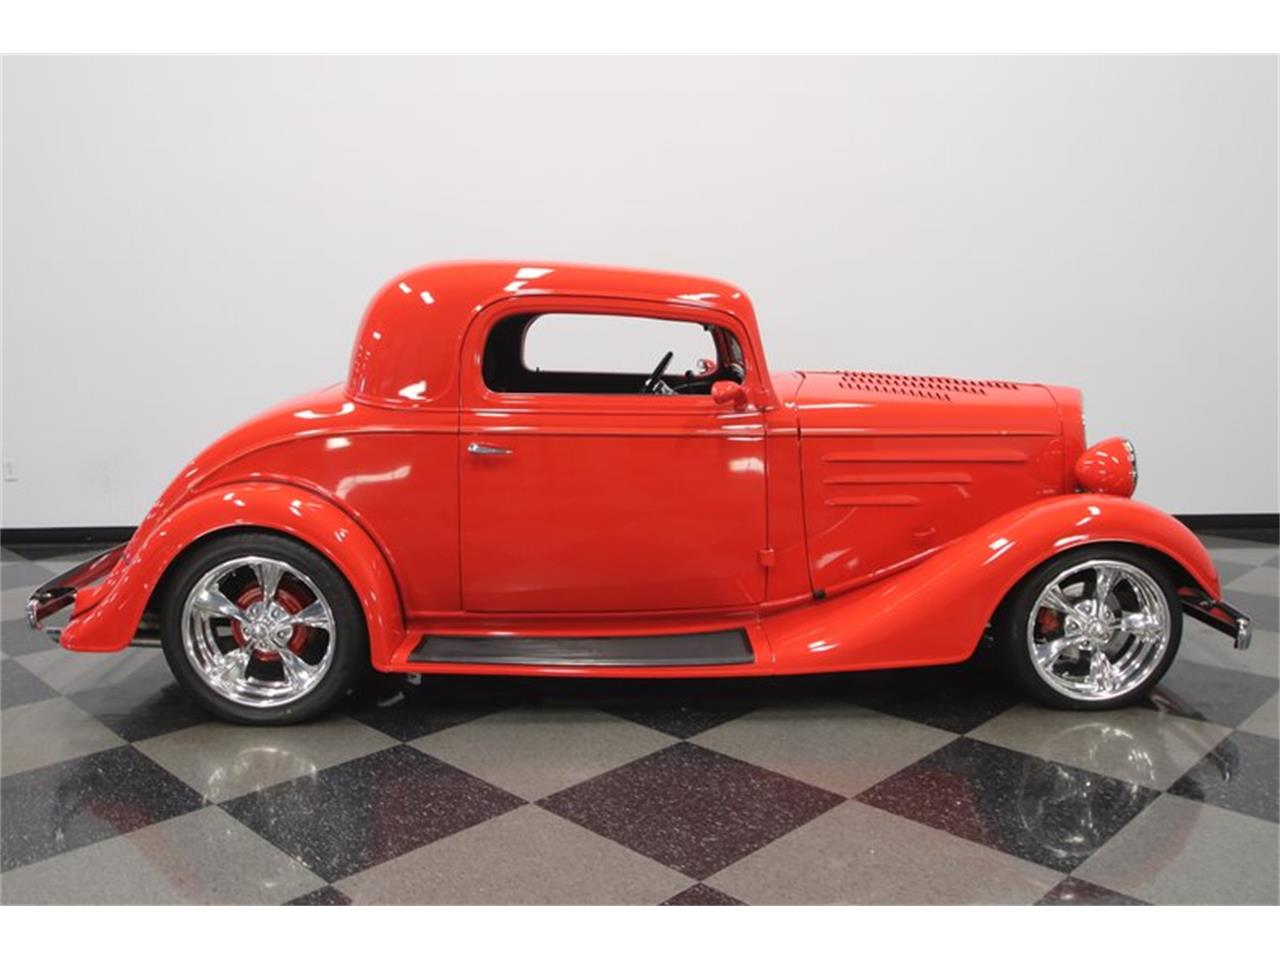 1934 Chevrolet 3-Window Coupe for sale in Lutz, FL – photo 15